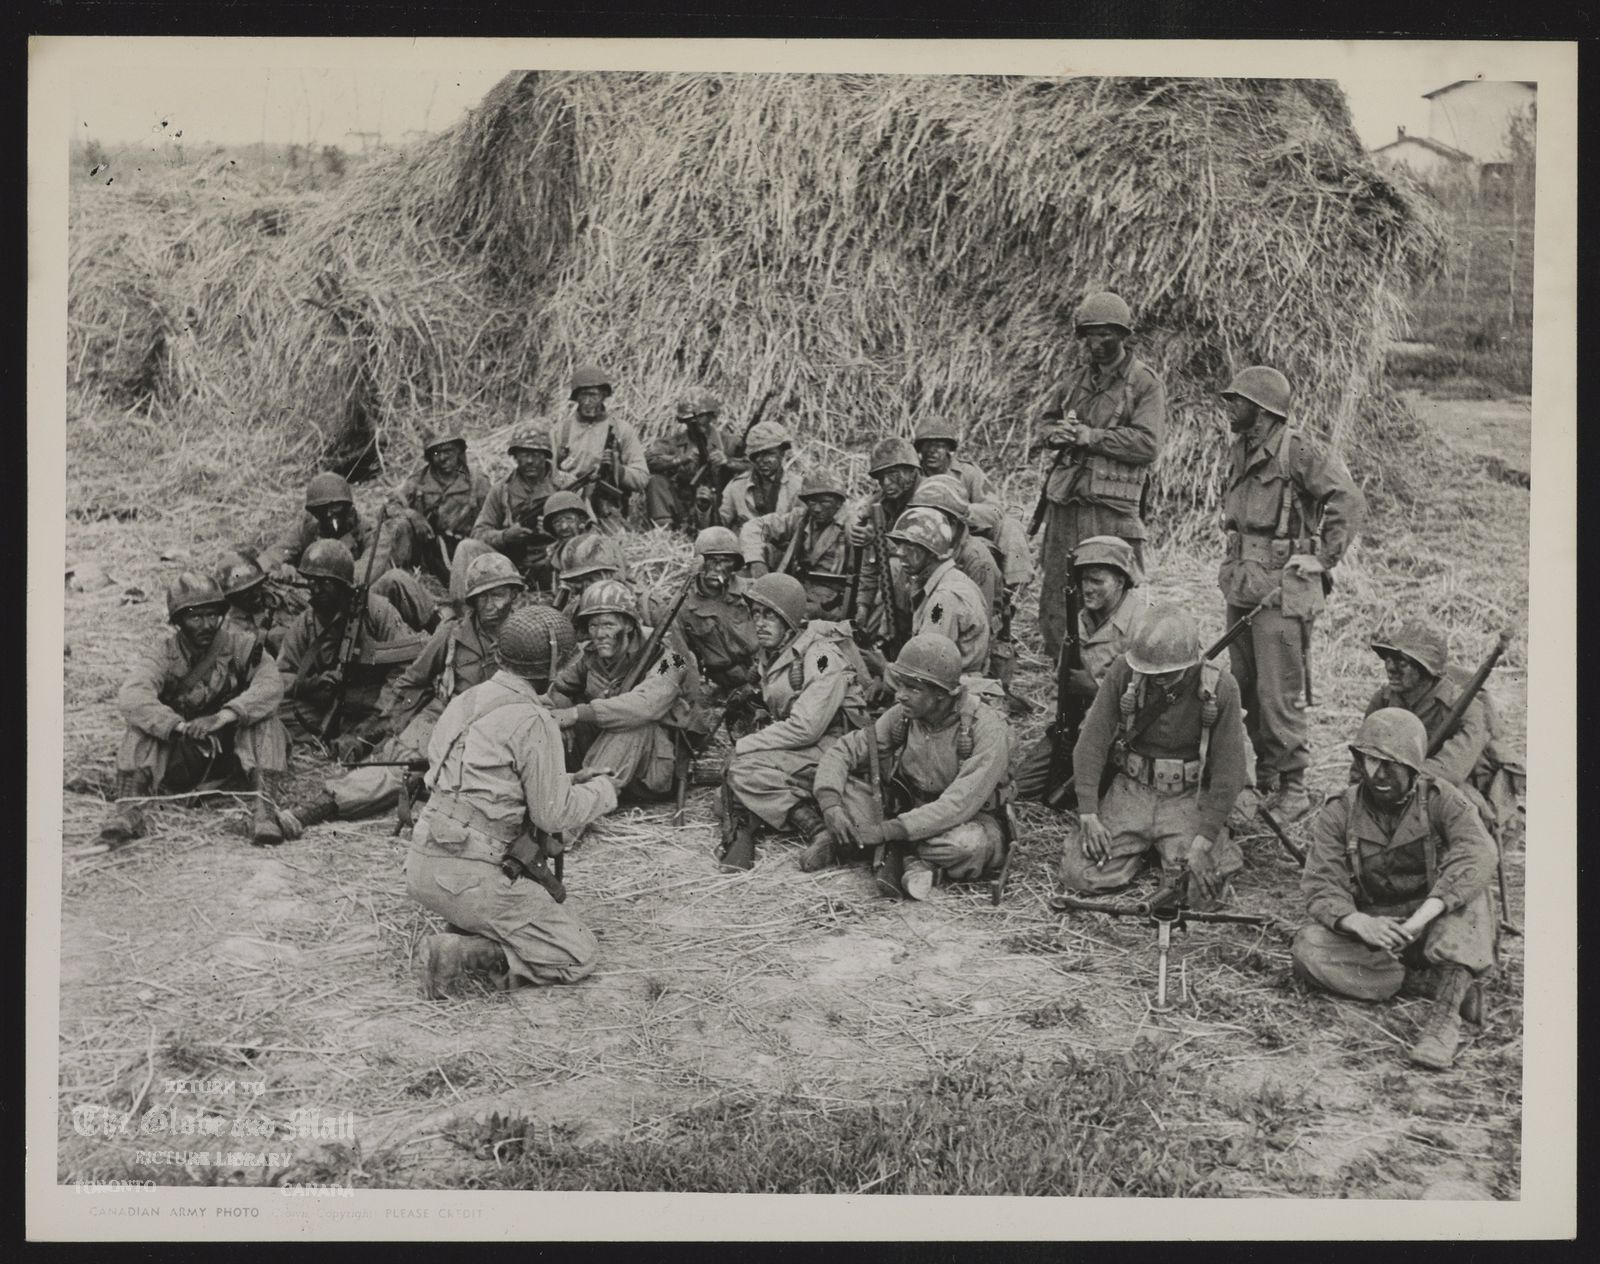 THEY GOT WHAT IT TAKES A Canadian patrol being briefed before setting out on a dangerous mission in italy. The briefing officer is Lieut. H. Rayner of Toronto in foreground. (Canadian Army Overseas Photo)